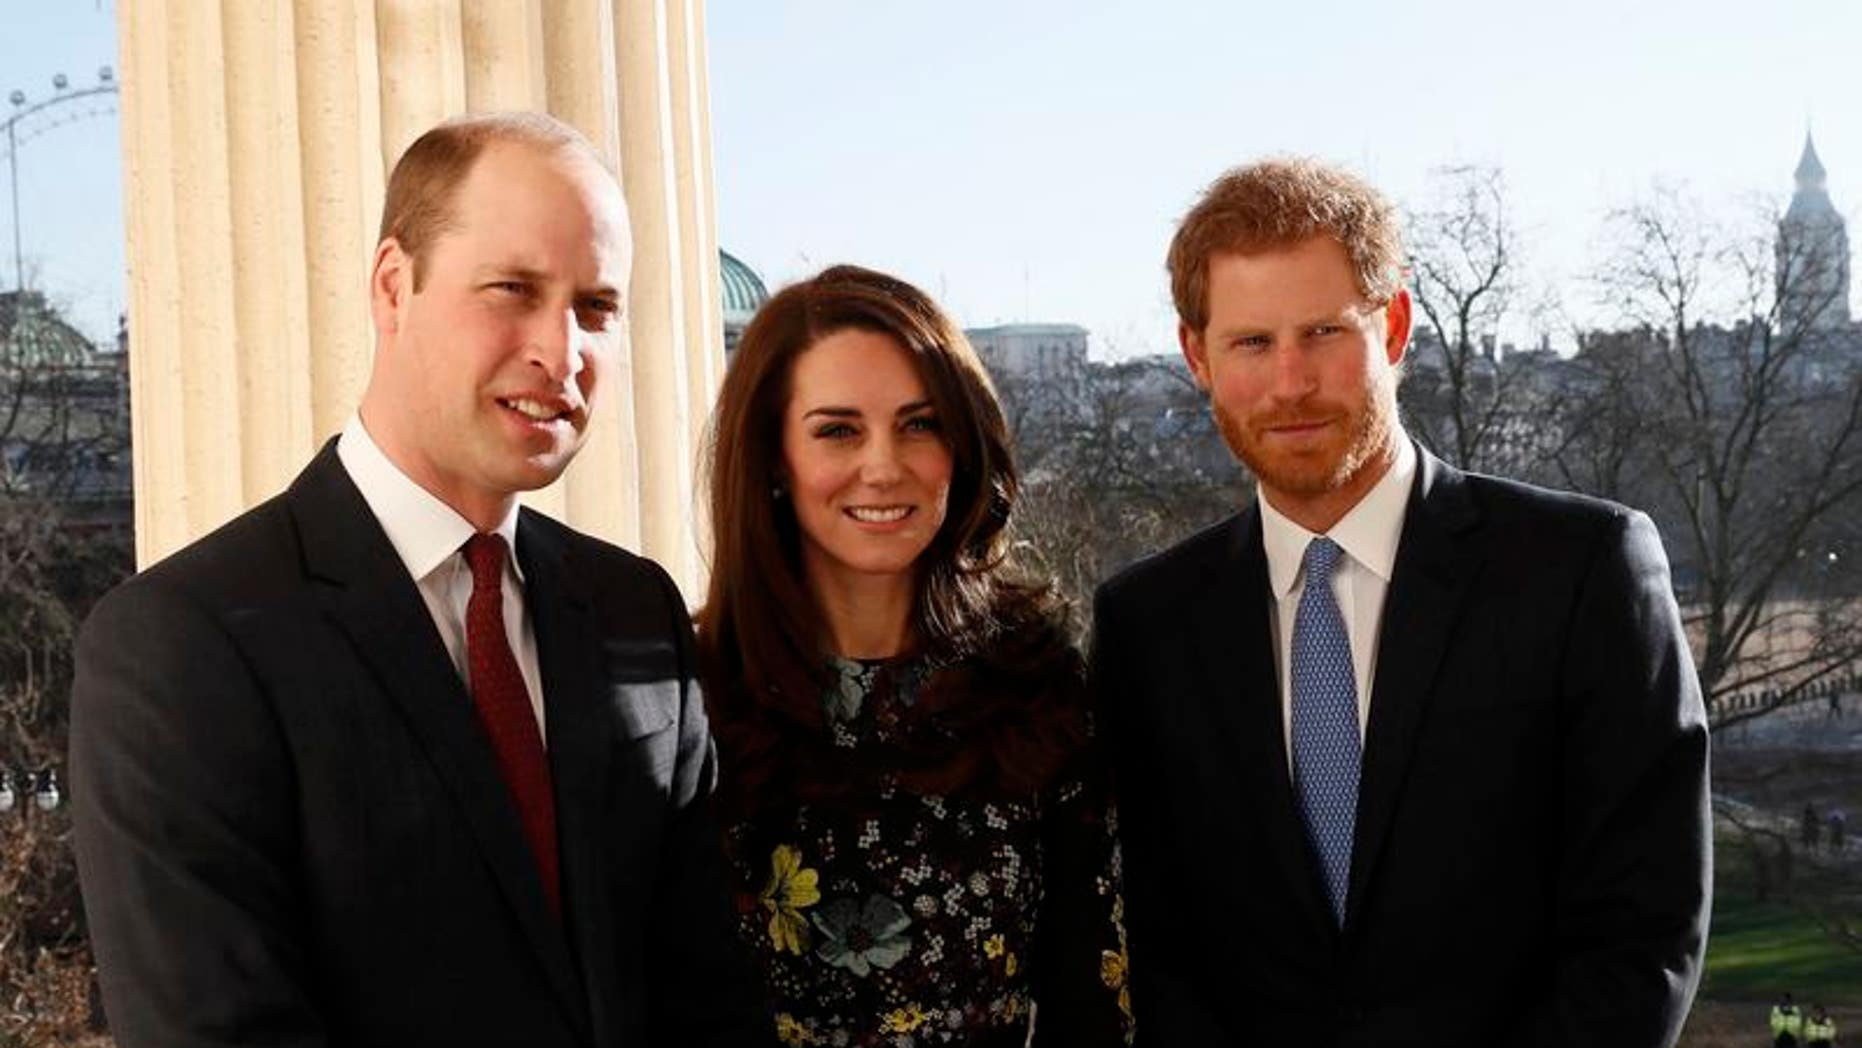 Britain's Prince William, Kate Duchess of Cambridge and Prince Harry pose for p hotograph at the Institute of Contemporary Arts in central London